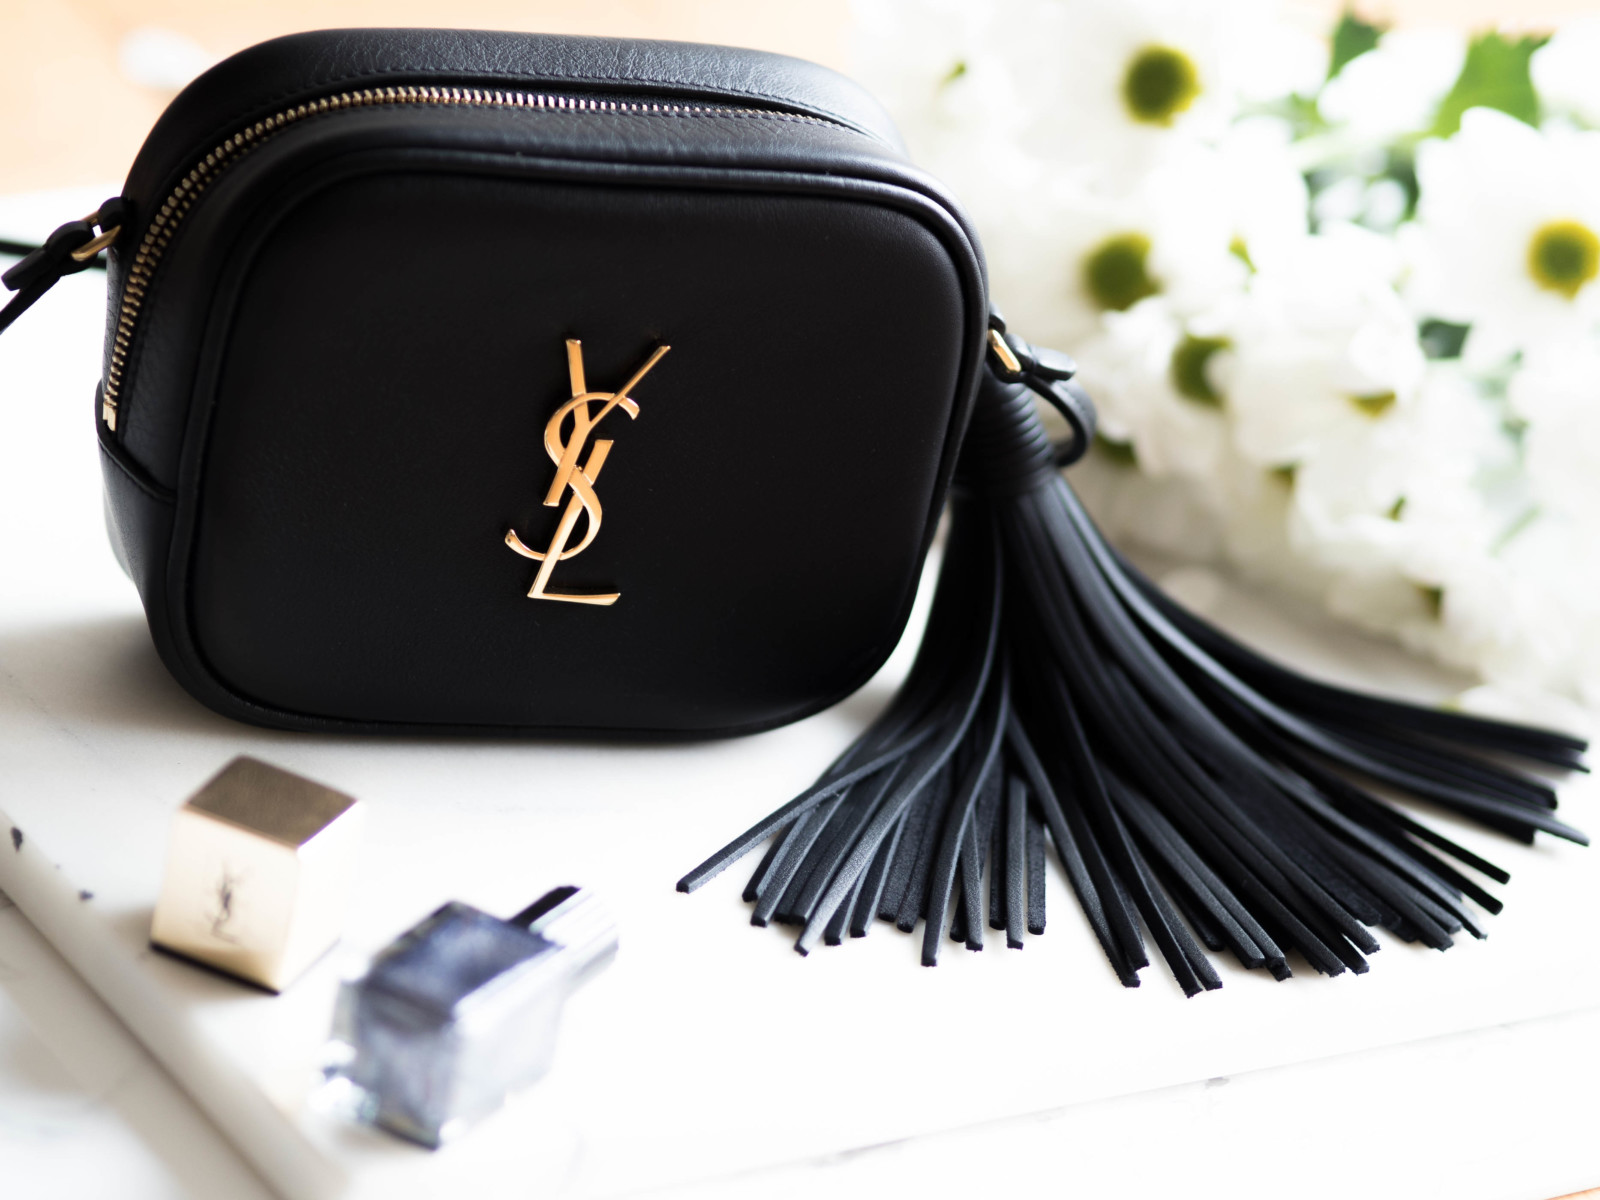 VIDEO: YSL Blogger Monogram Bag review & What fits inside